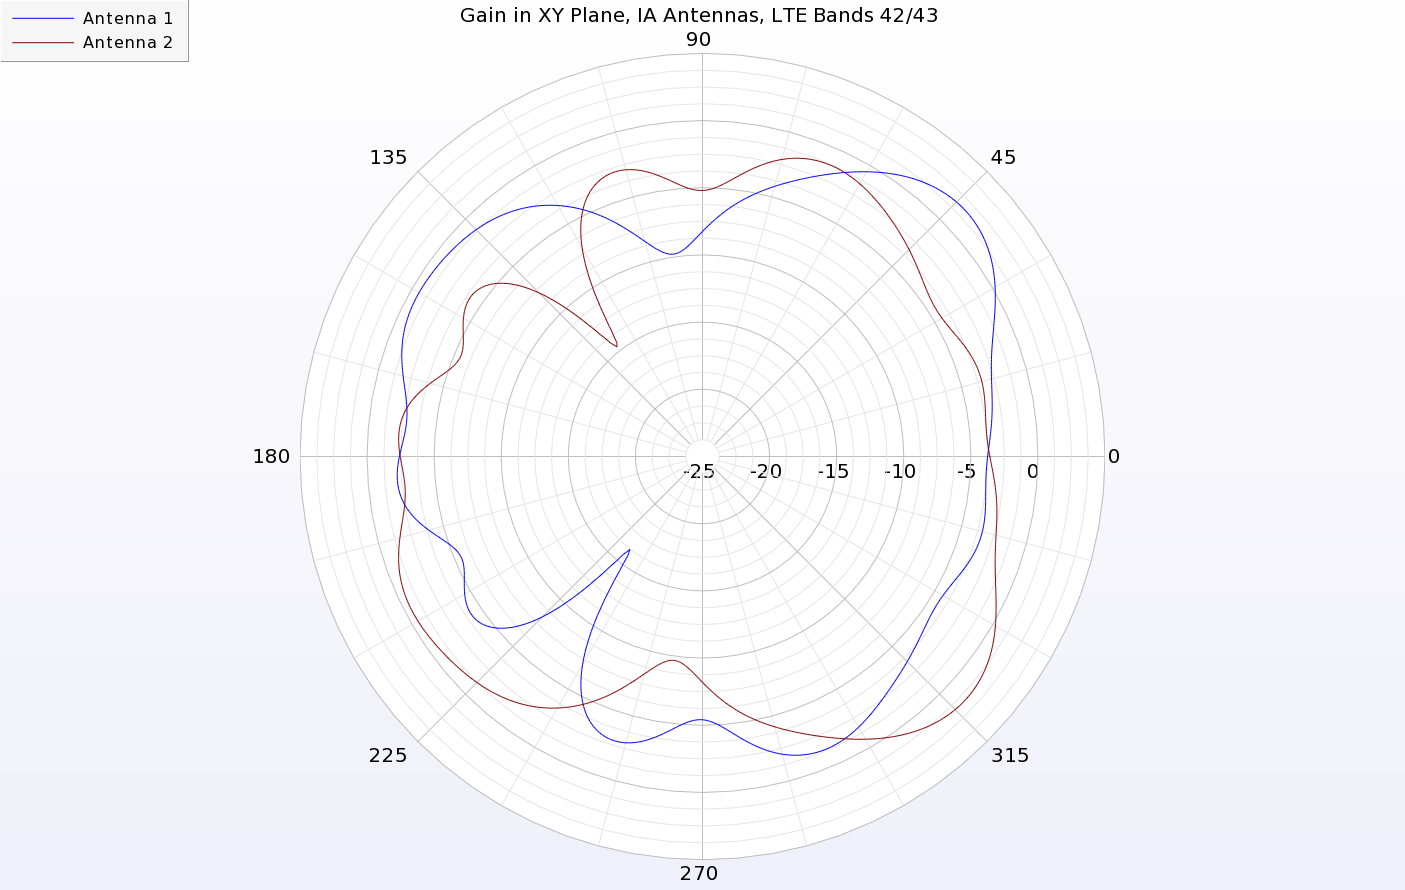 Figure 10: The gain patterns in the XY plane for the two IA antennas show peak gains toward the respective corners of the device.